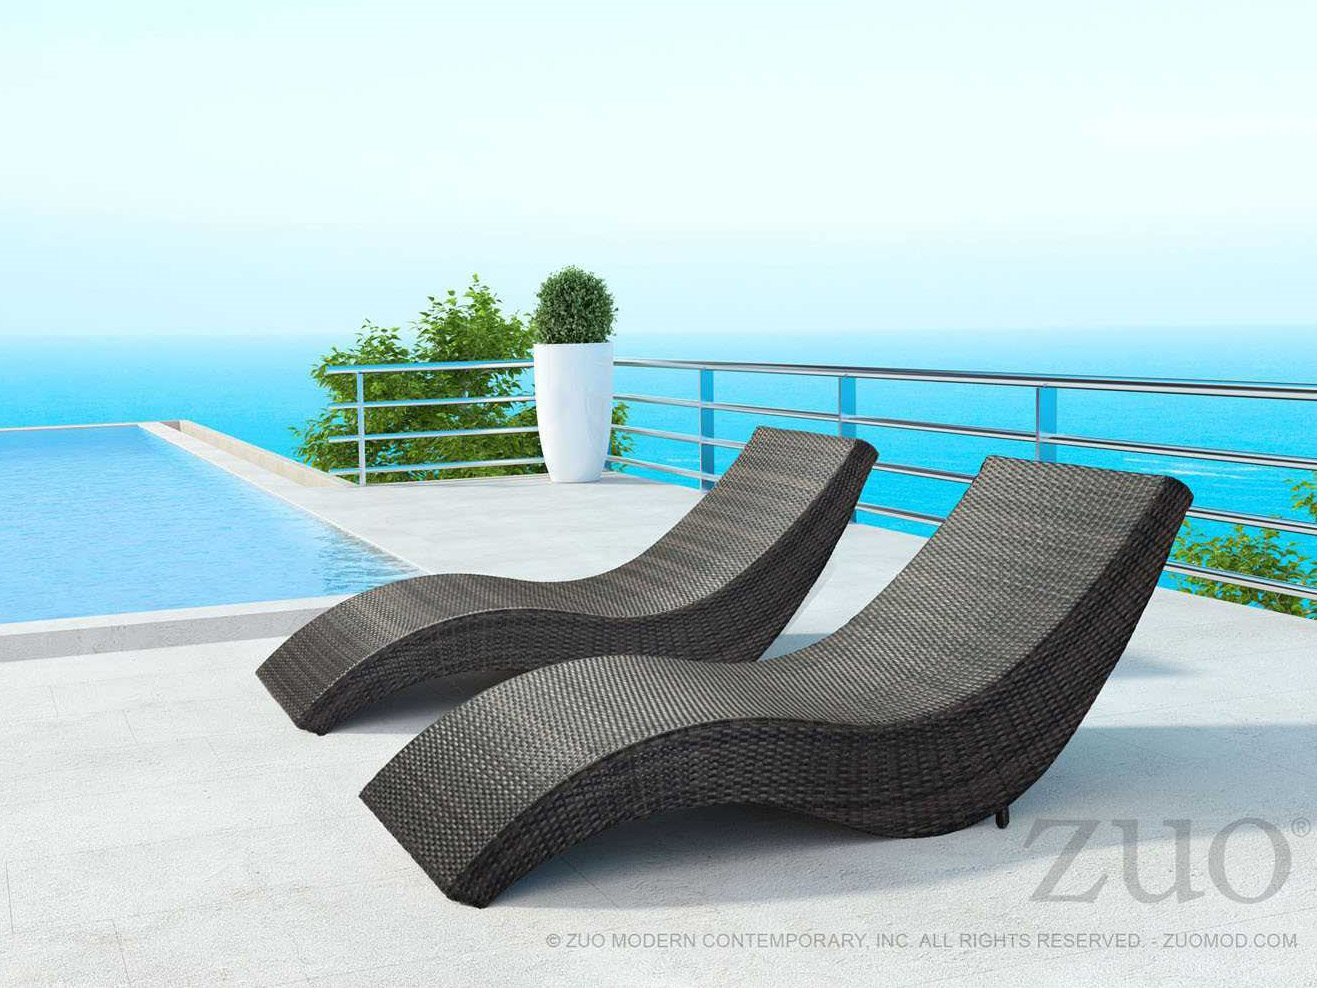 Zuo outdoor hassleholtz beach aluminum wicker beach chaise for Beach lounge chaise